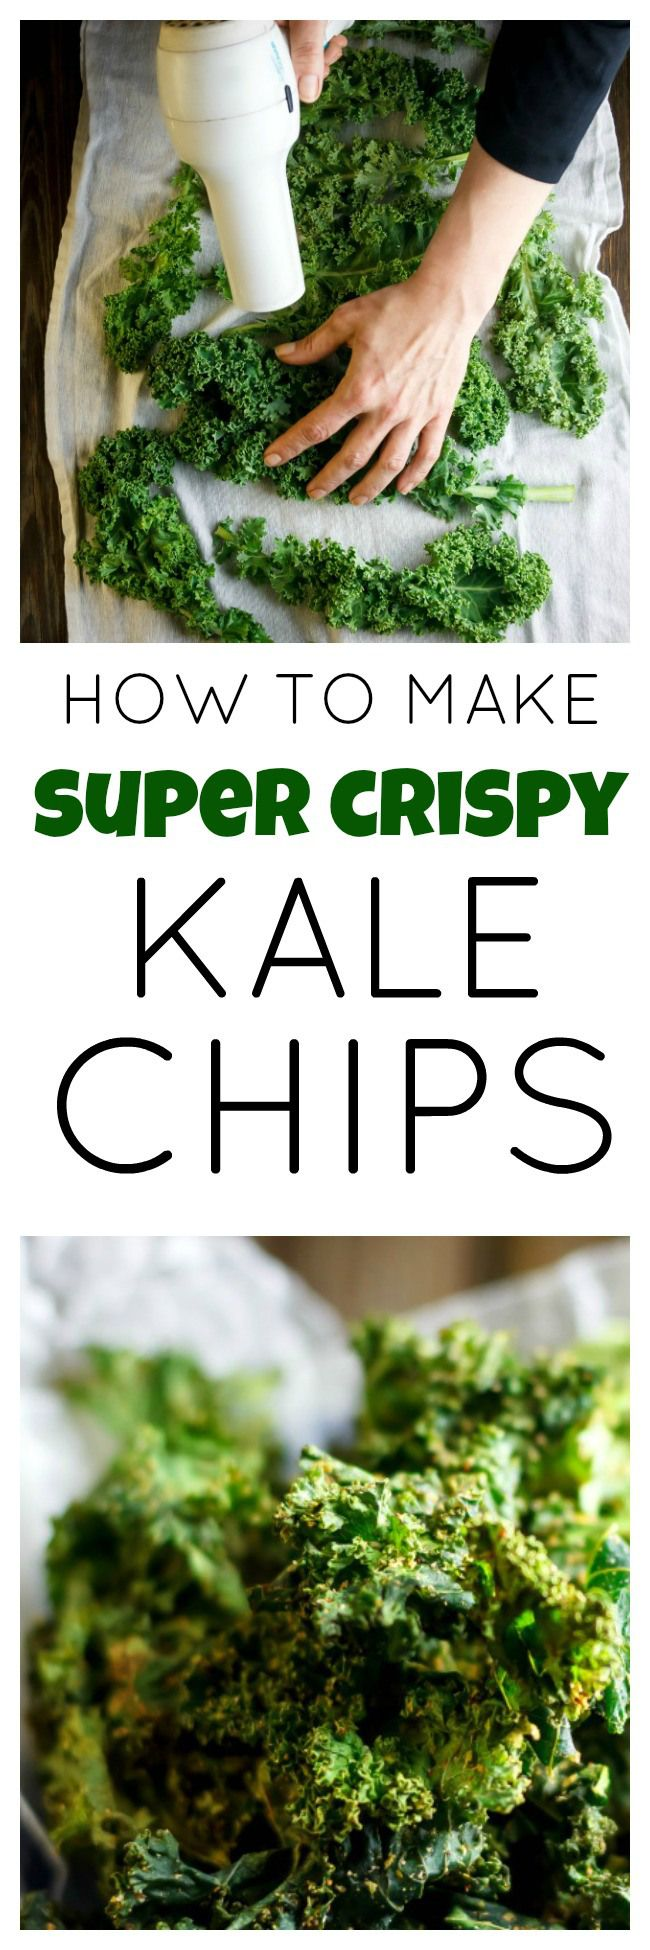 How to Make Kale Chips Super Crispy